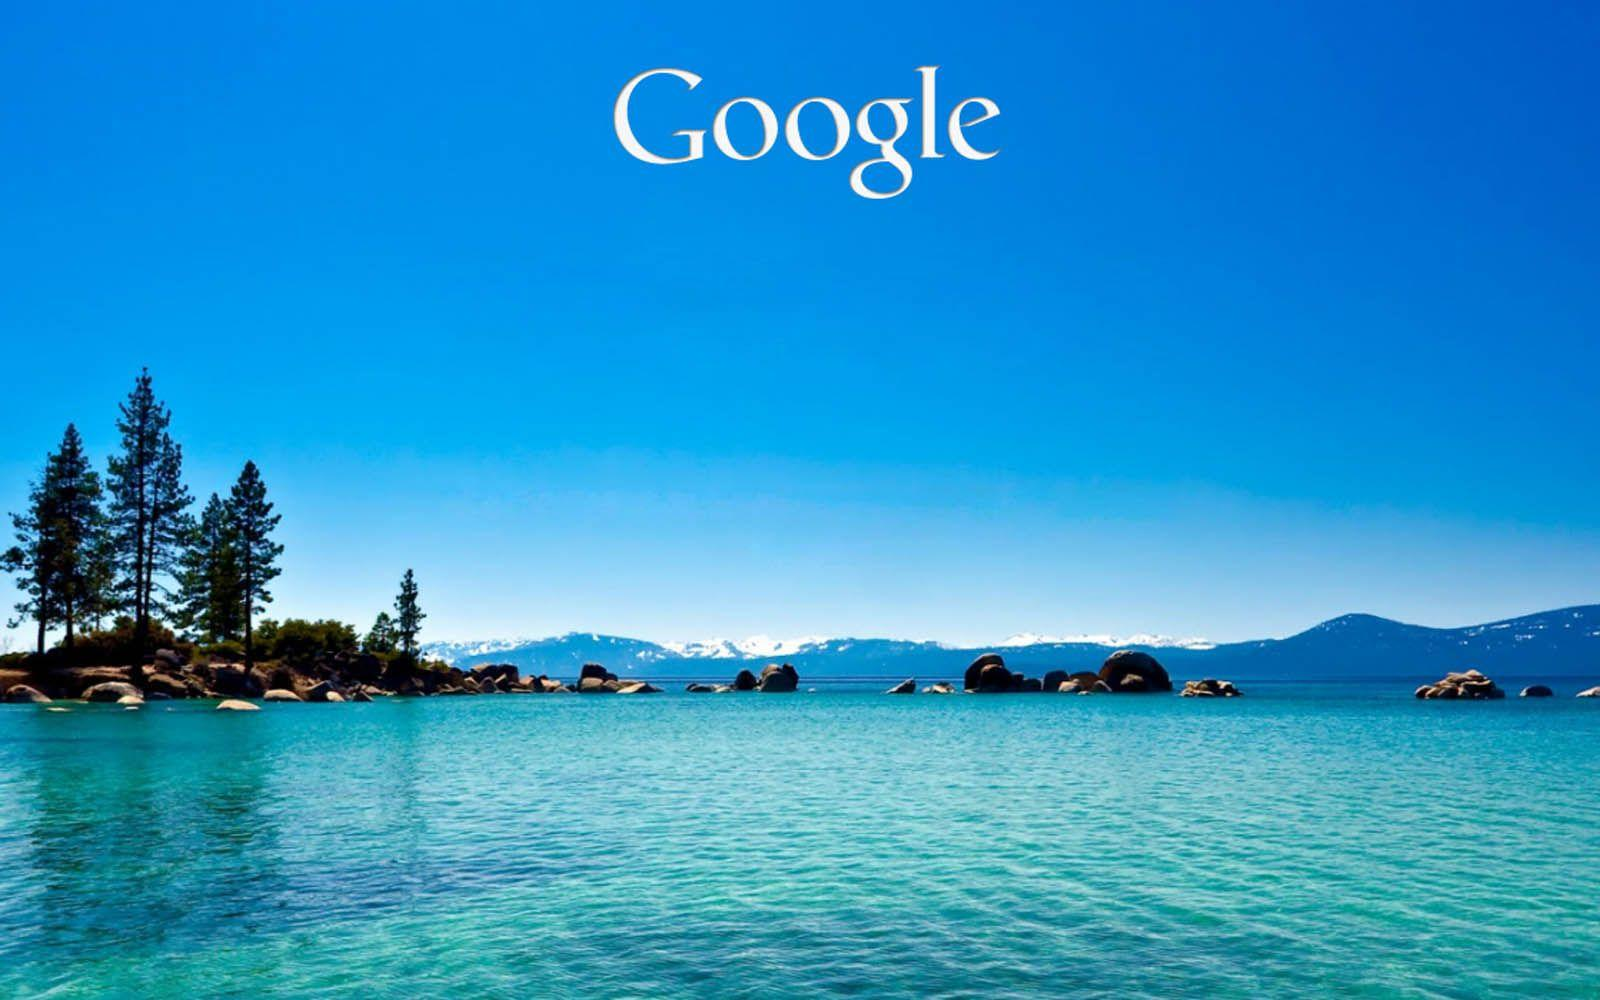 grijze google desktop hd - photo #19